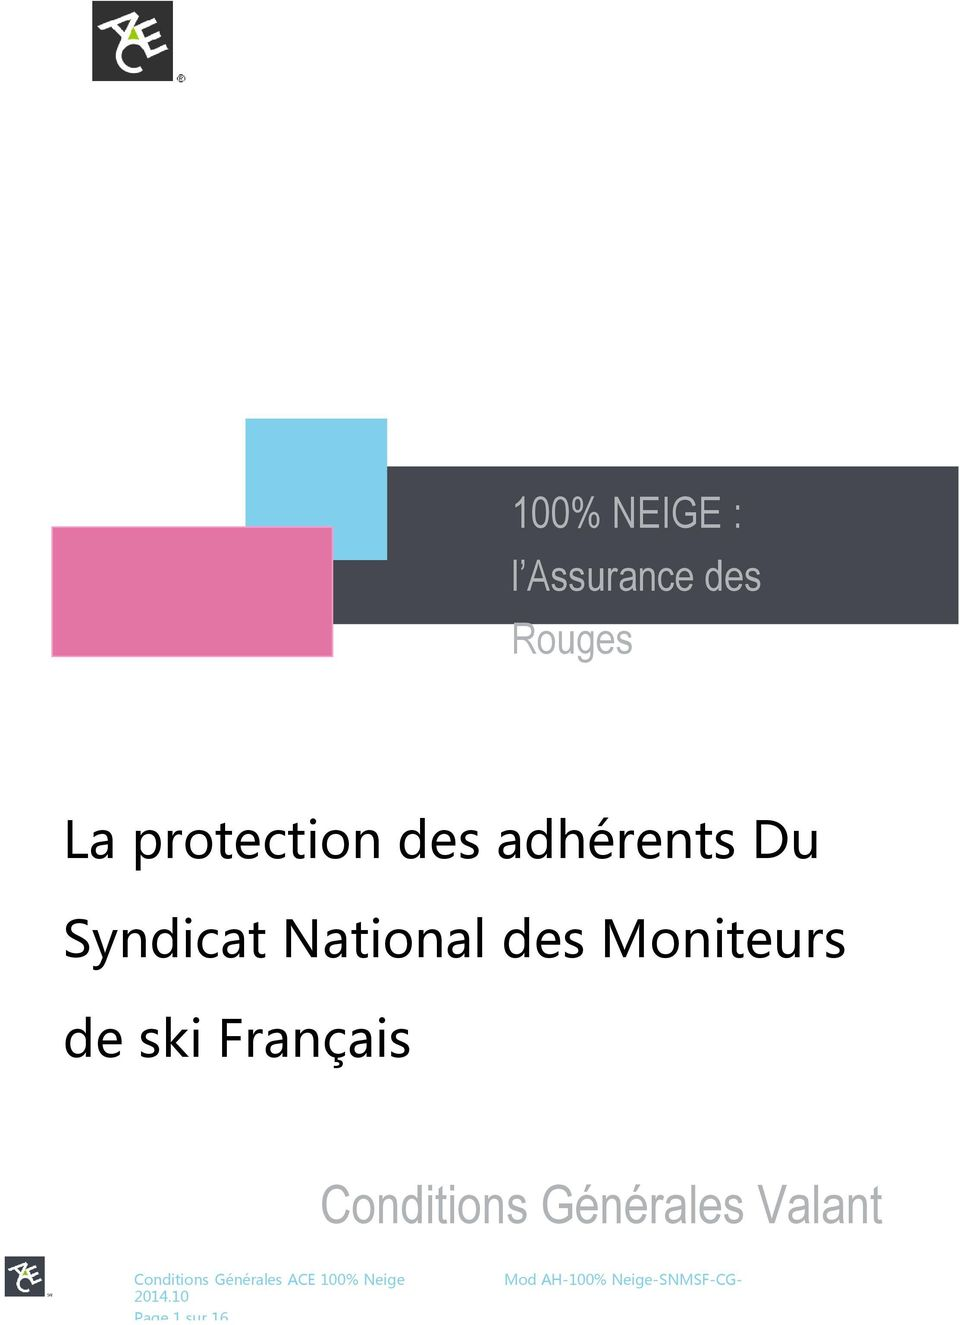 National des Moniteurs de ski Français